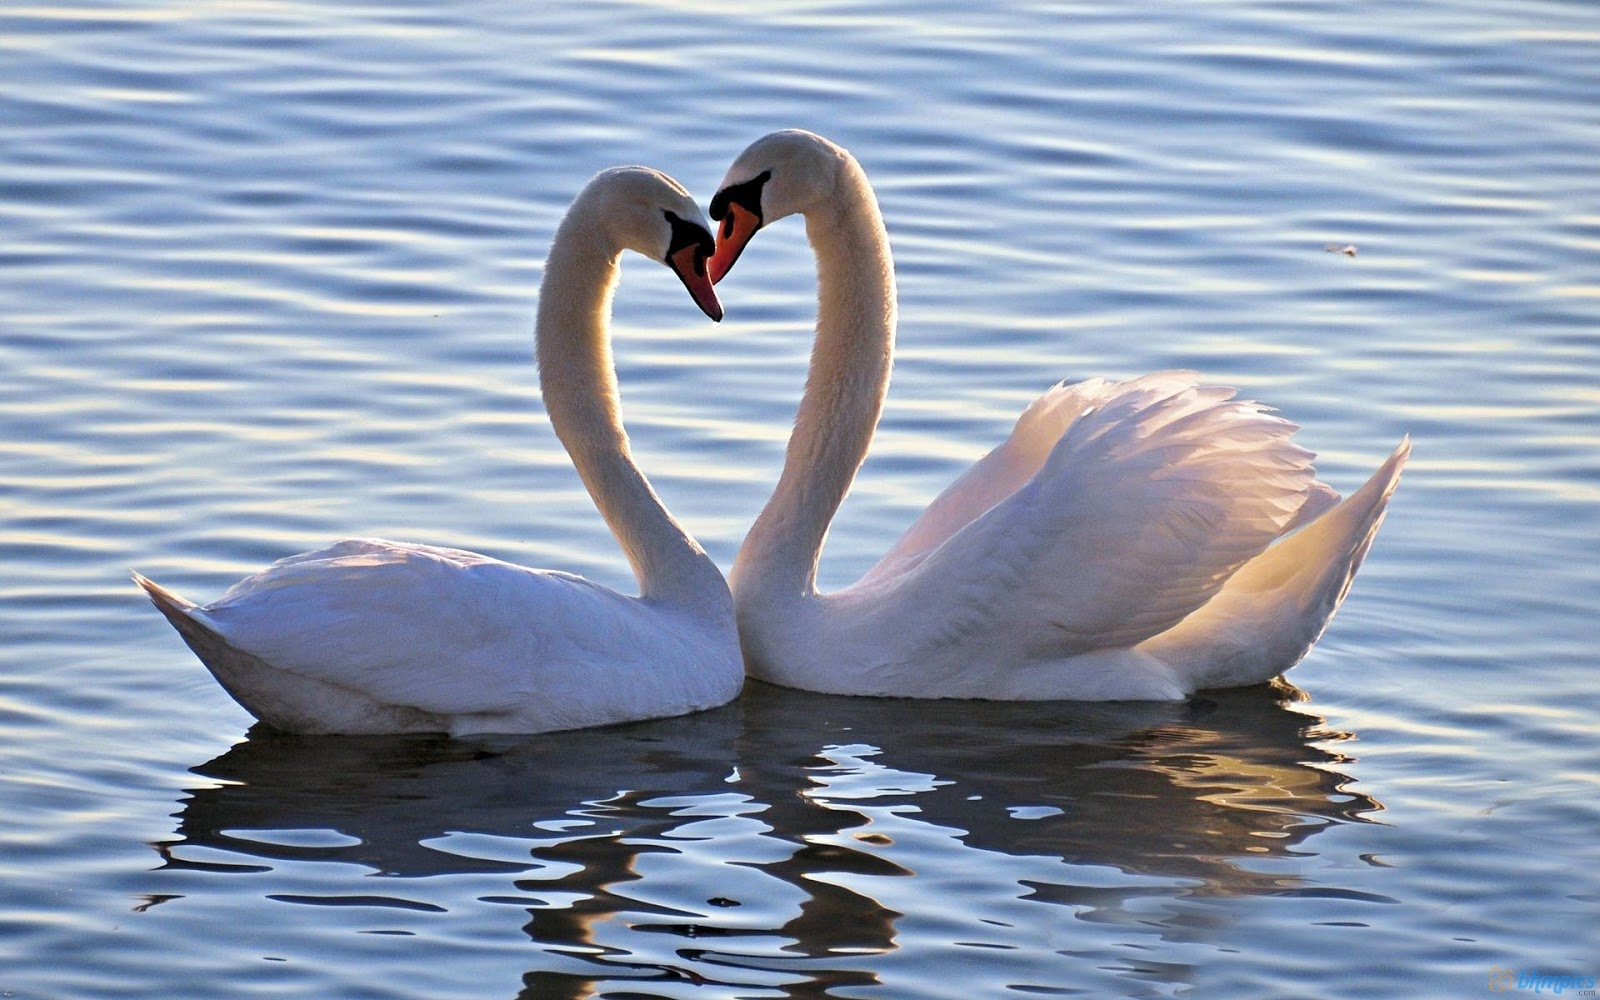 Incredible Images: Love Birds (High resolution)